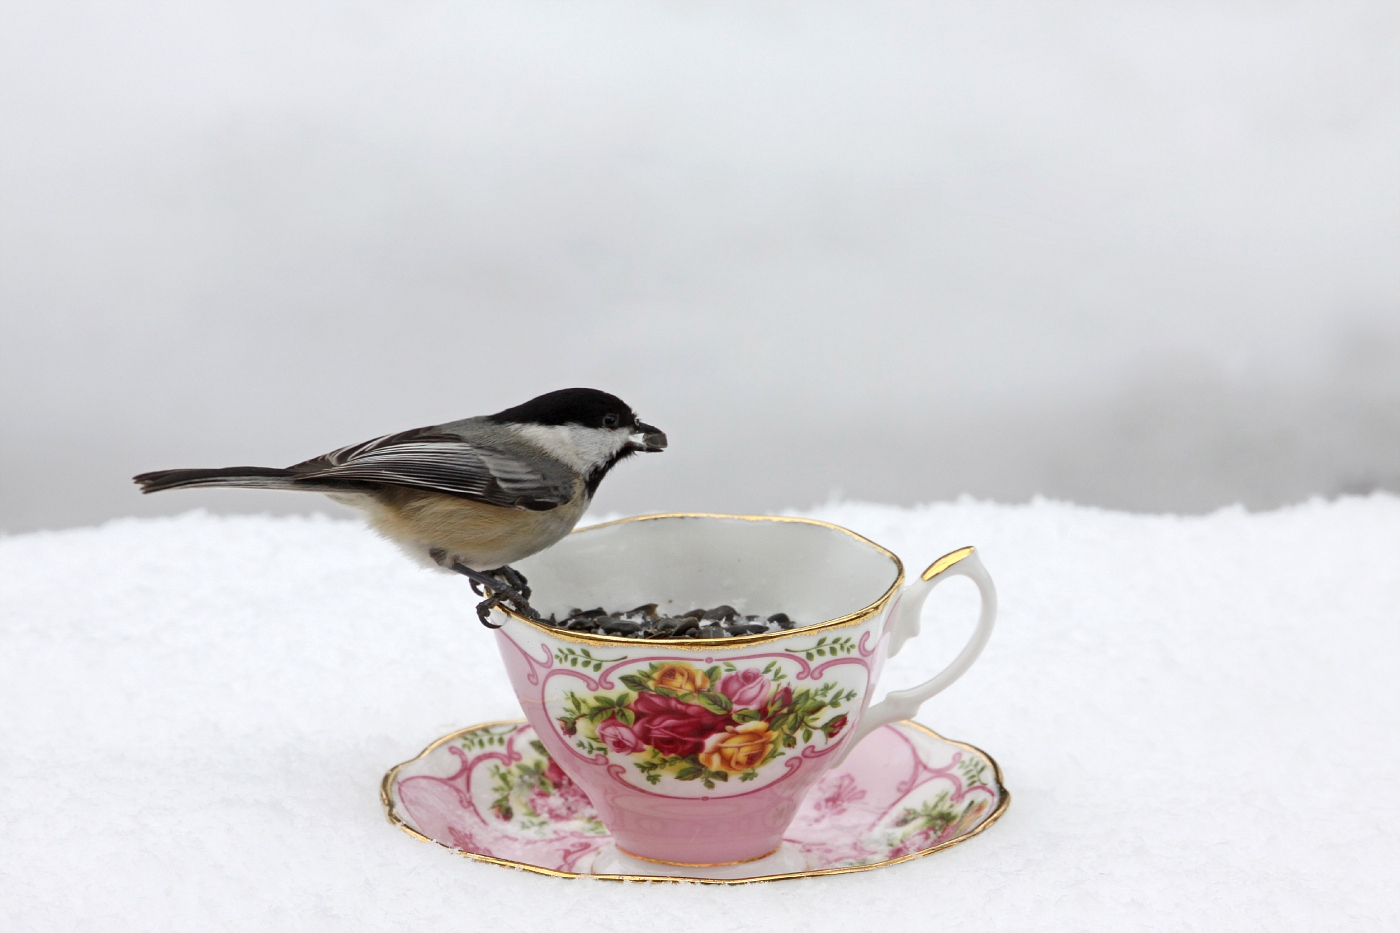 Teacup at the Feeder #2